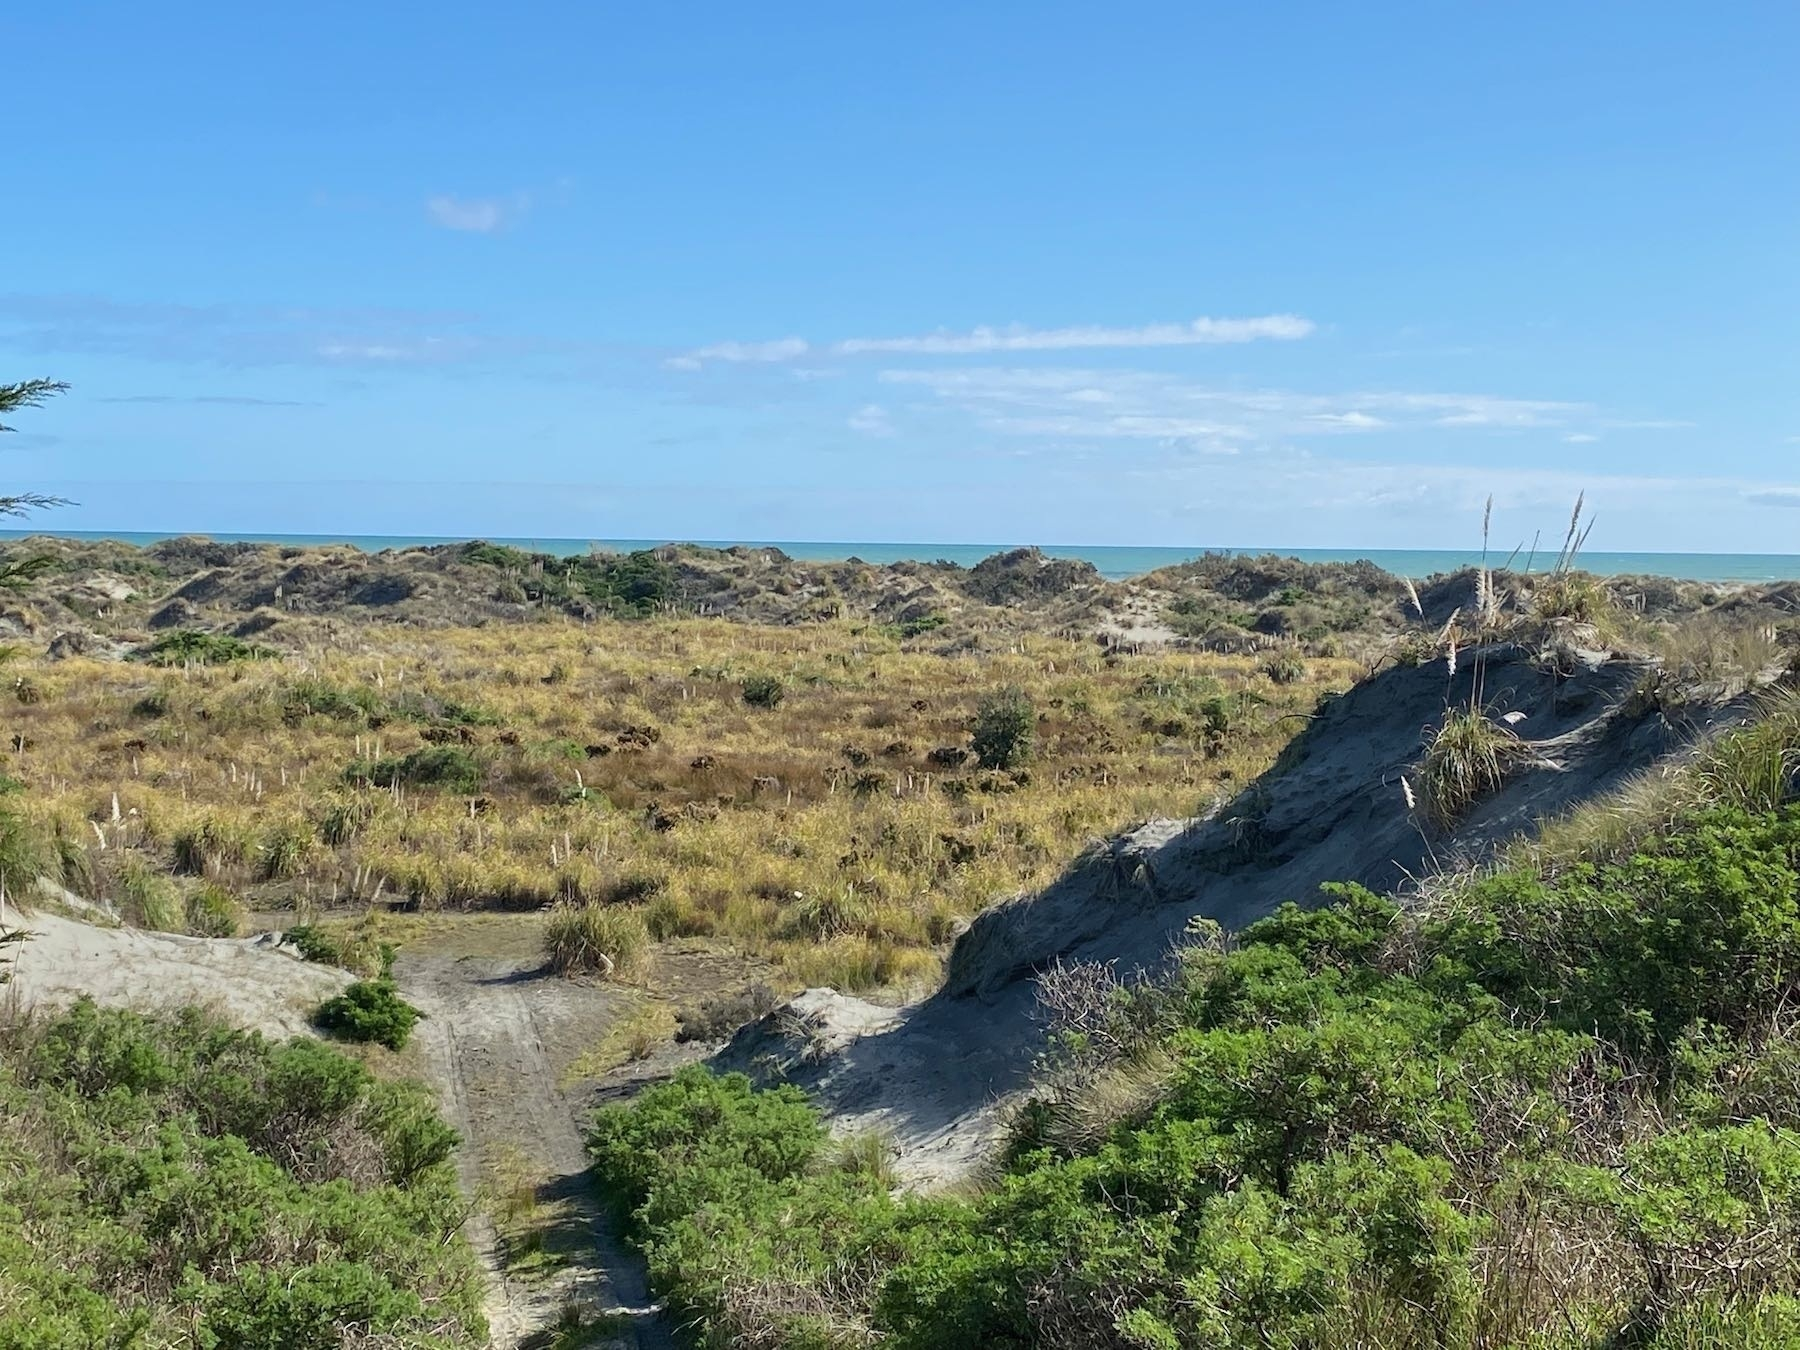 Looking west across scrub to the sea.